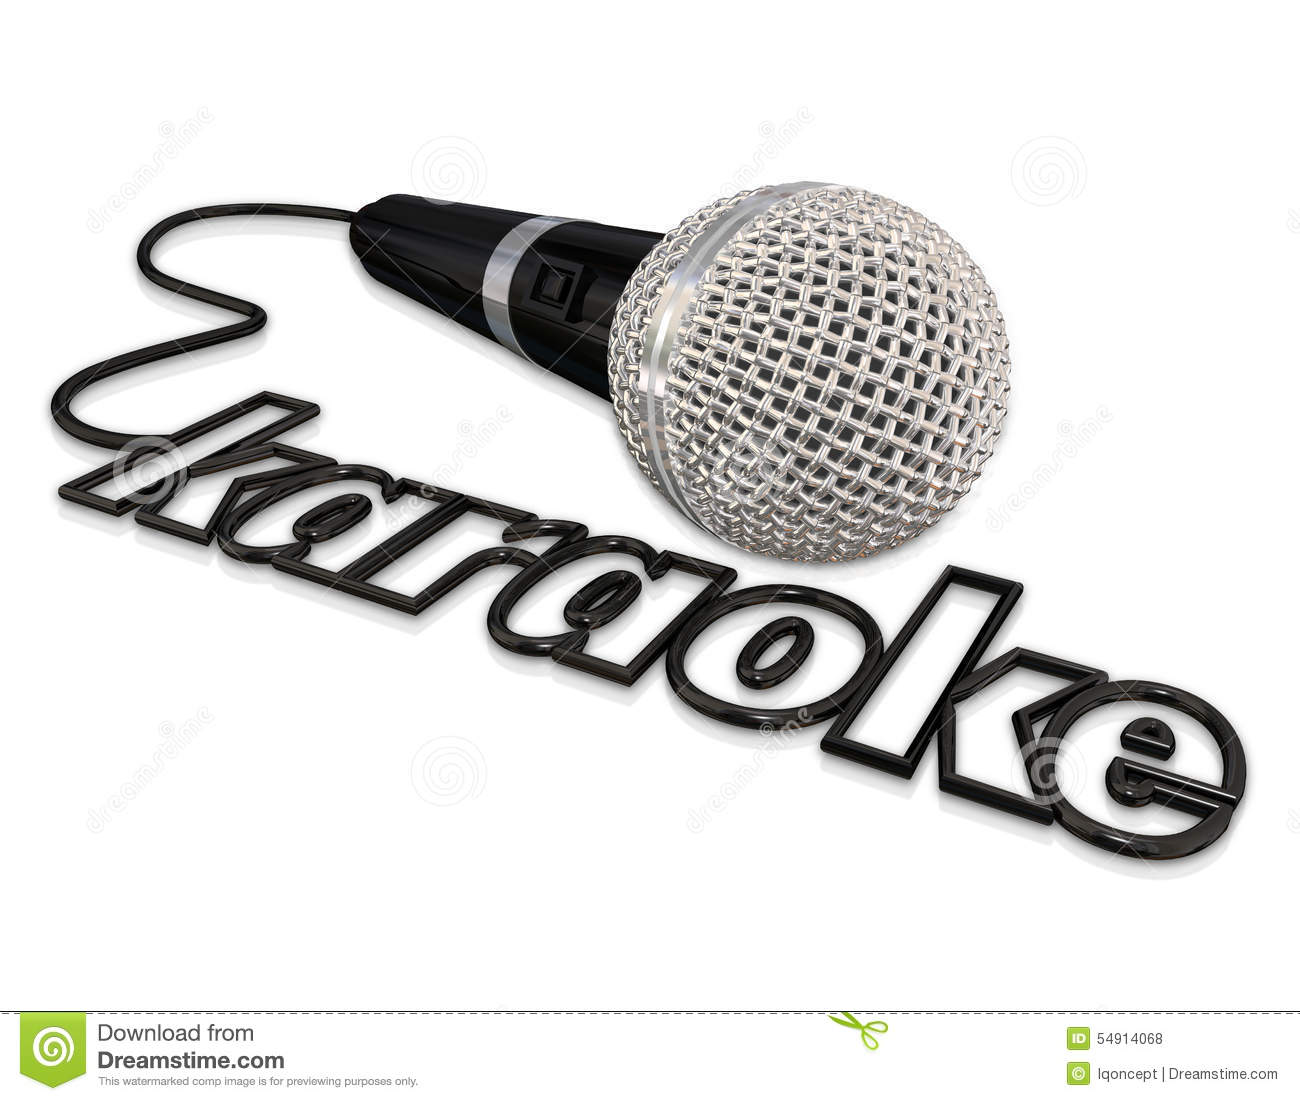 Karaoke Clipart Free Download 3 Clipart Station